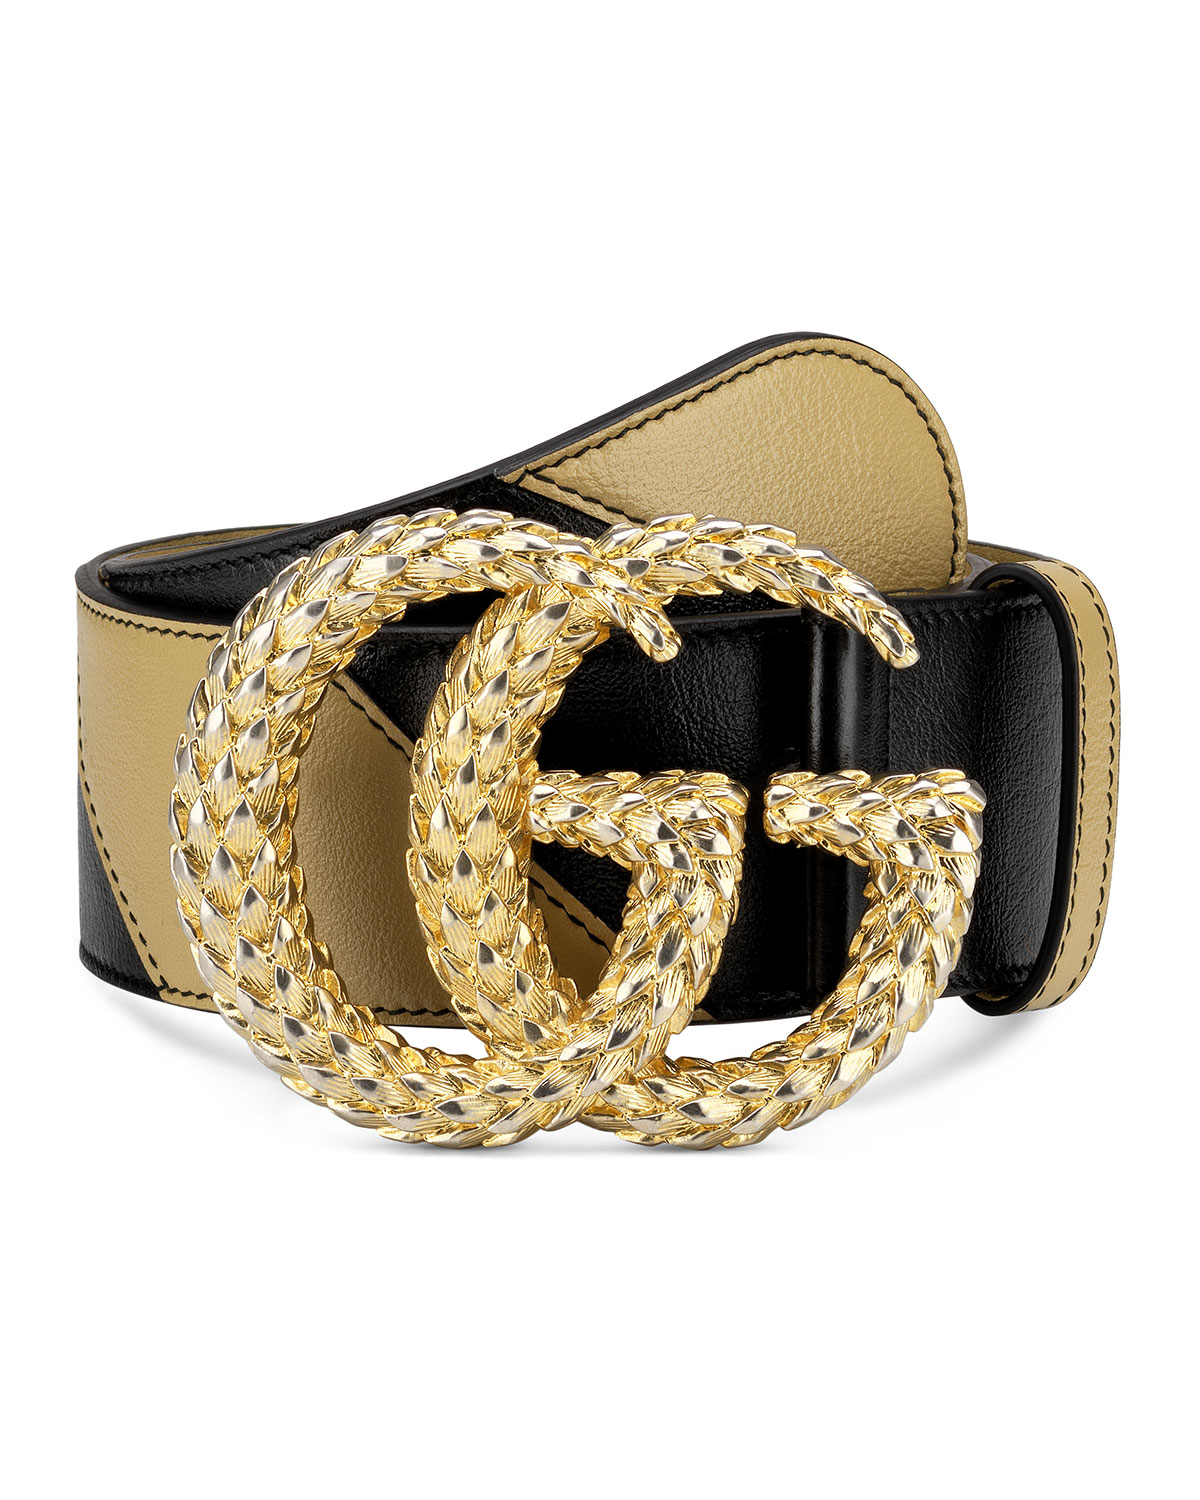 Gucci Belts TWO-TONE DIAGONAL QUILTED LEATHER BELT W/ TEXTURED DOUBLE G BUCKLE